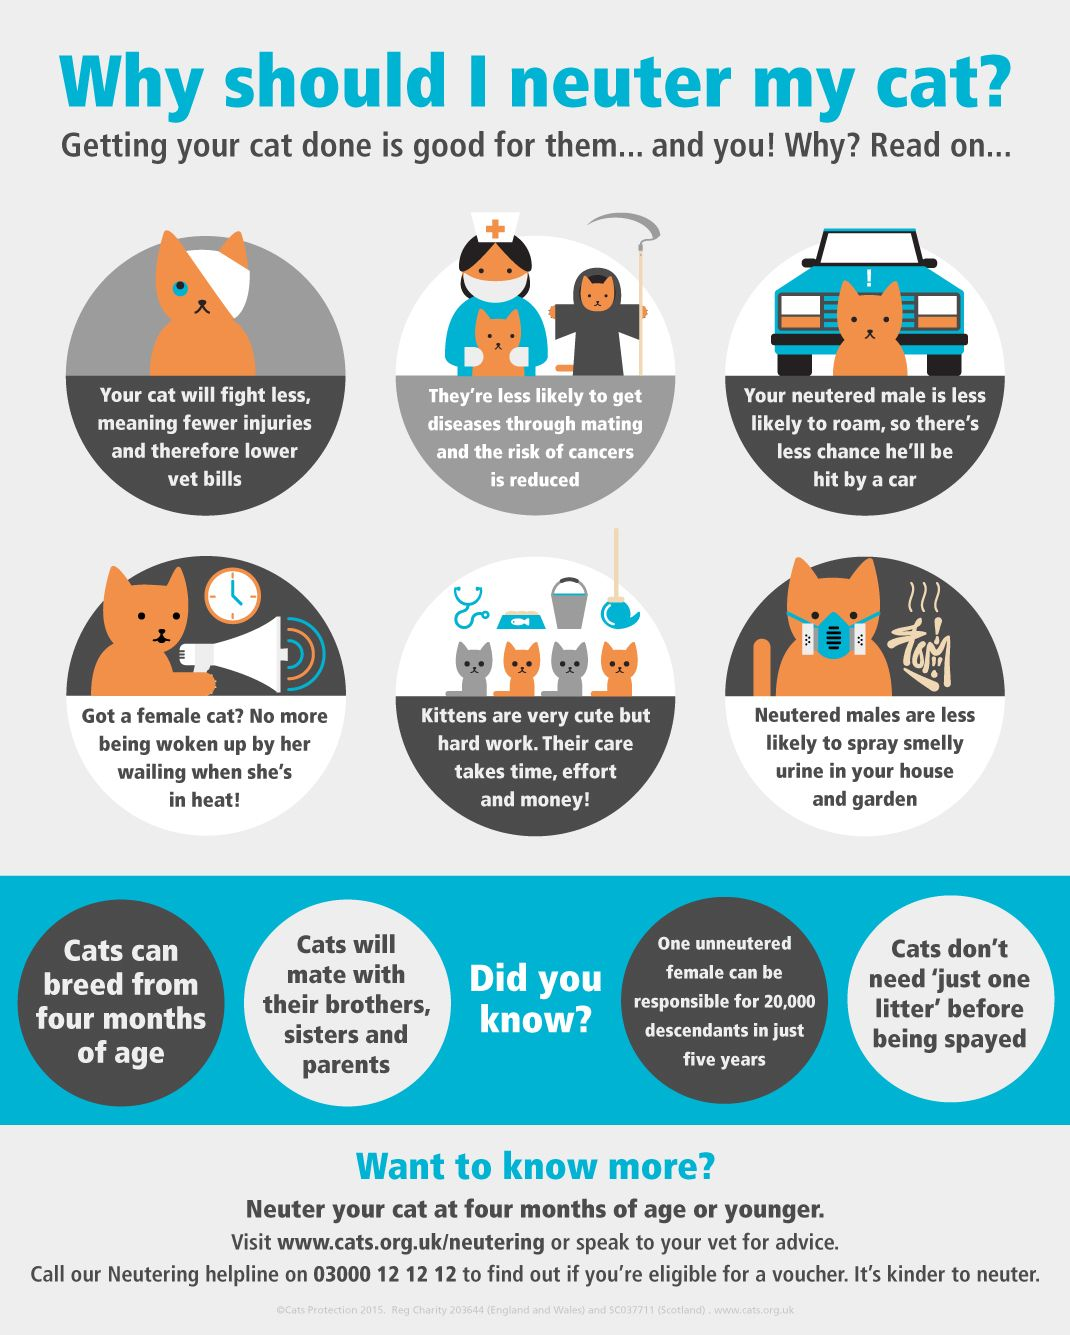 Why Should I Neuter My Cat Fun Facts About Cats Neuter Cat Care